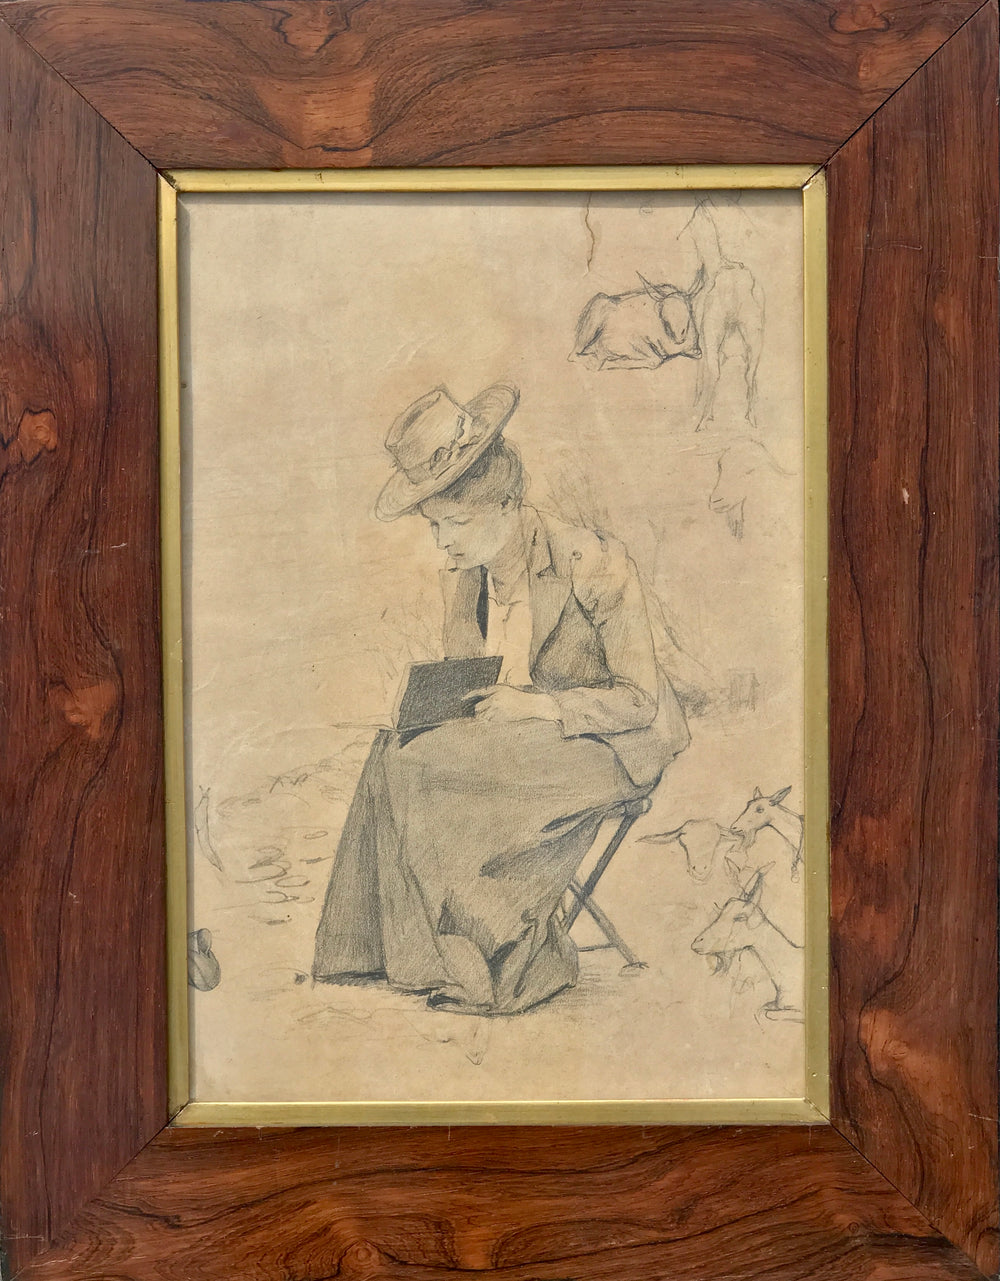 Artist Portrait of Anna Foerster Roesler Graphit Drawing